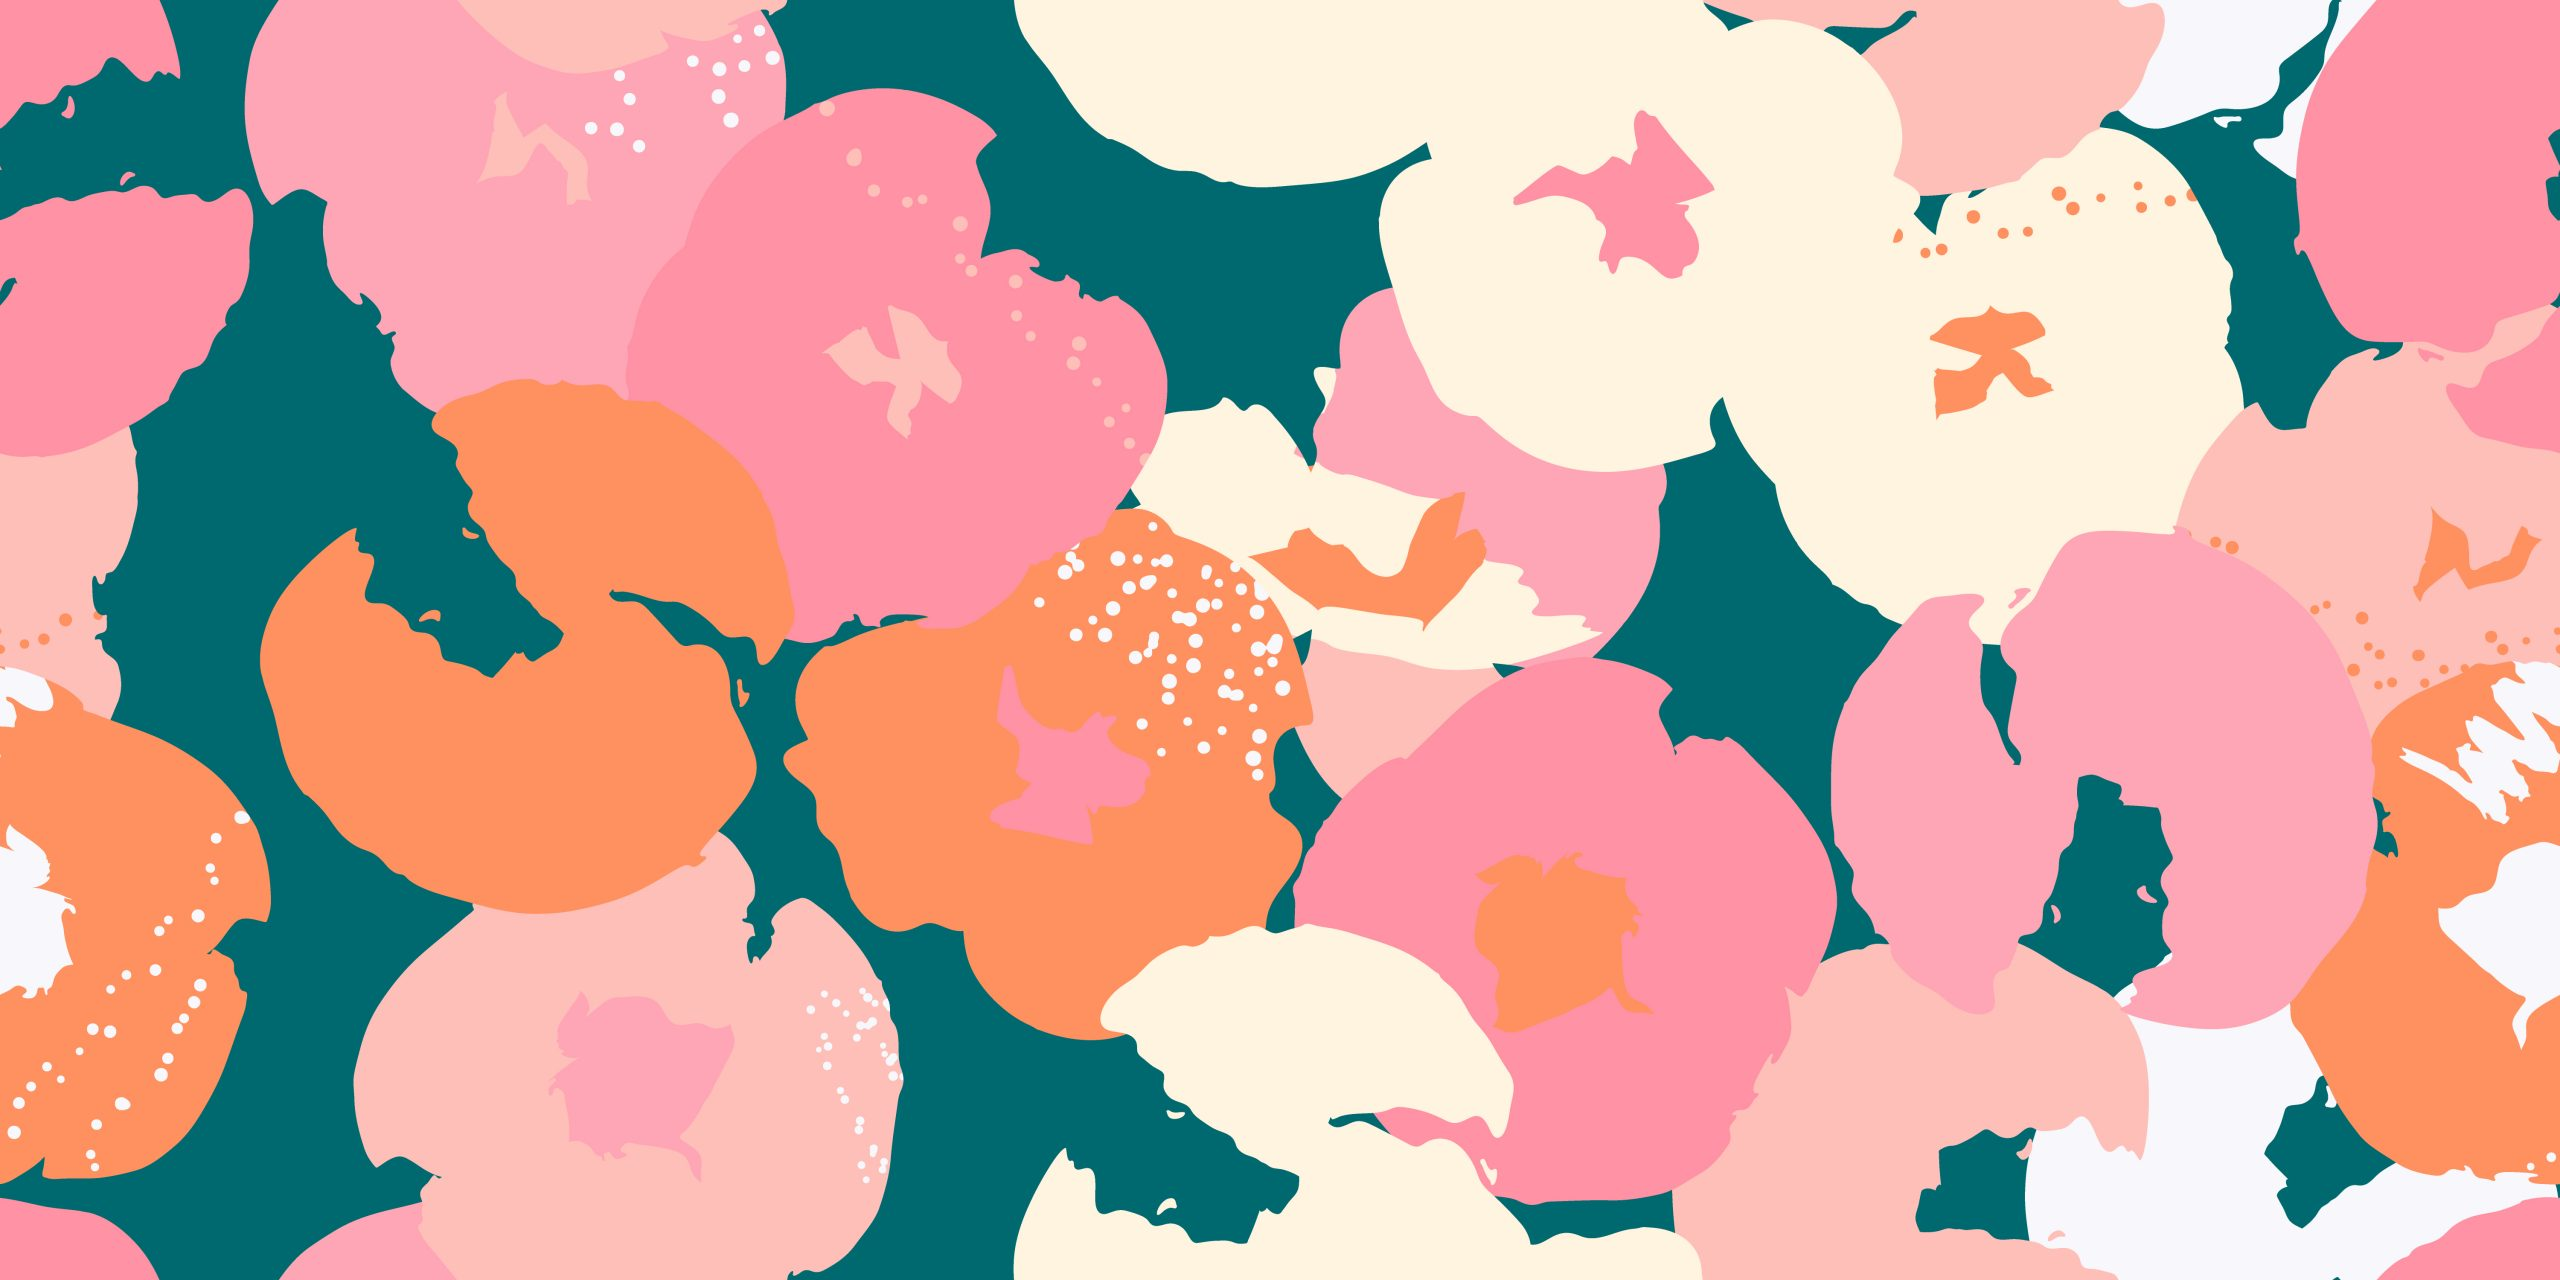 Painting universal freehand floral seamless pattern with hand-drawn flowers. Graphic design for background, card, banner, poster, cover, invitation, fabric, header or brochure